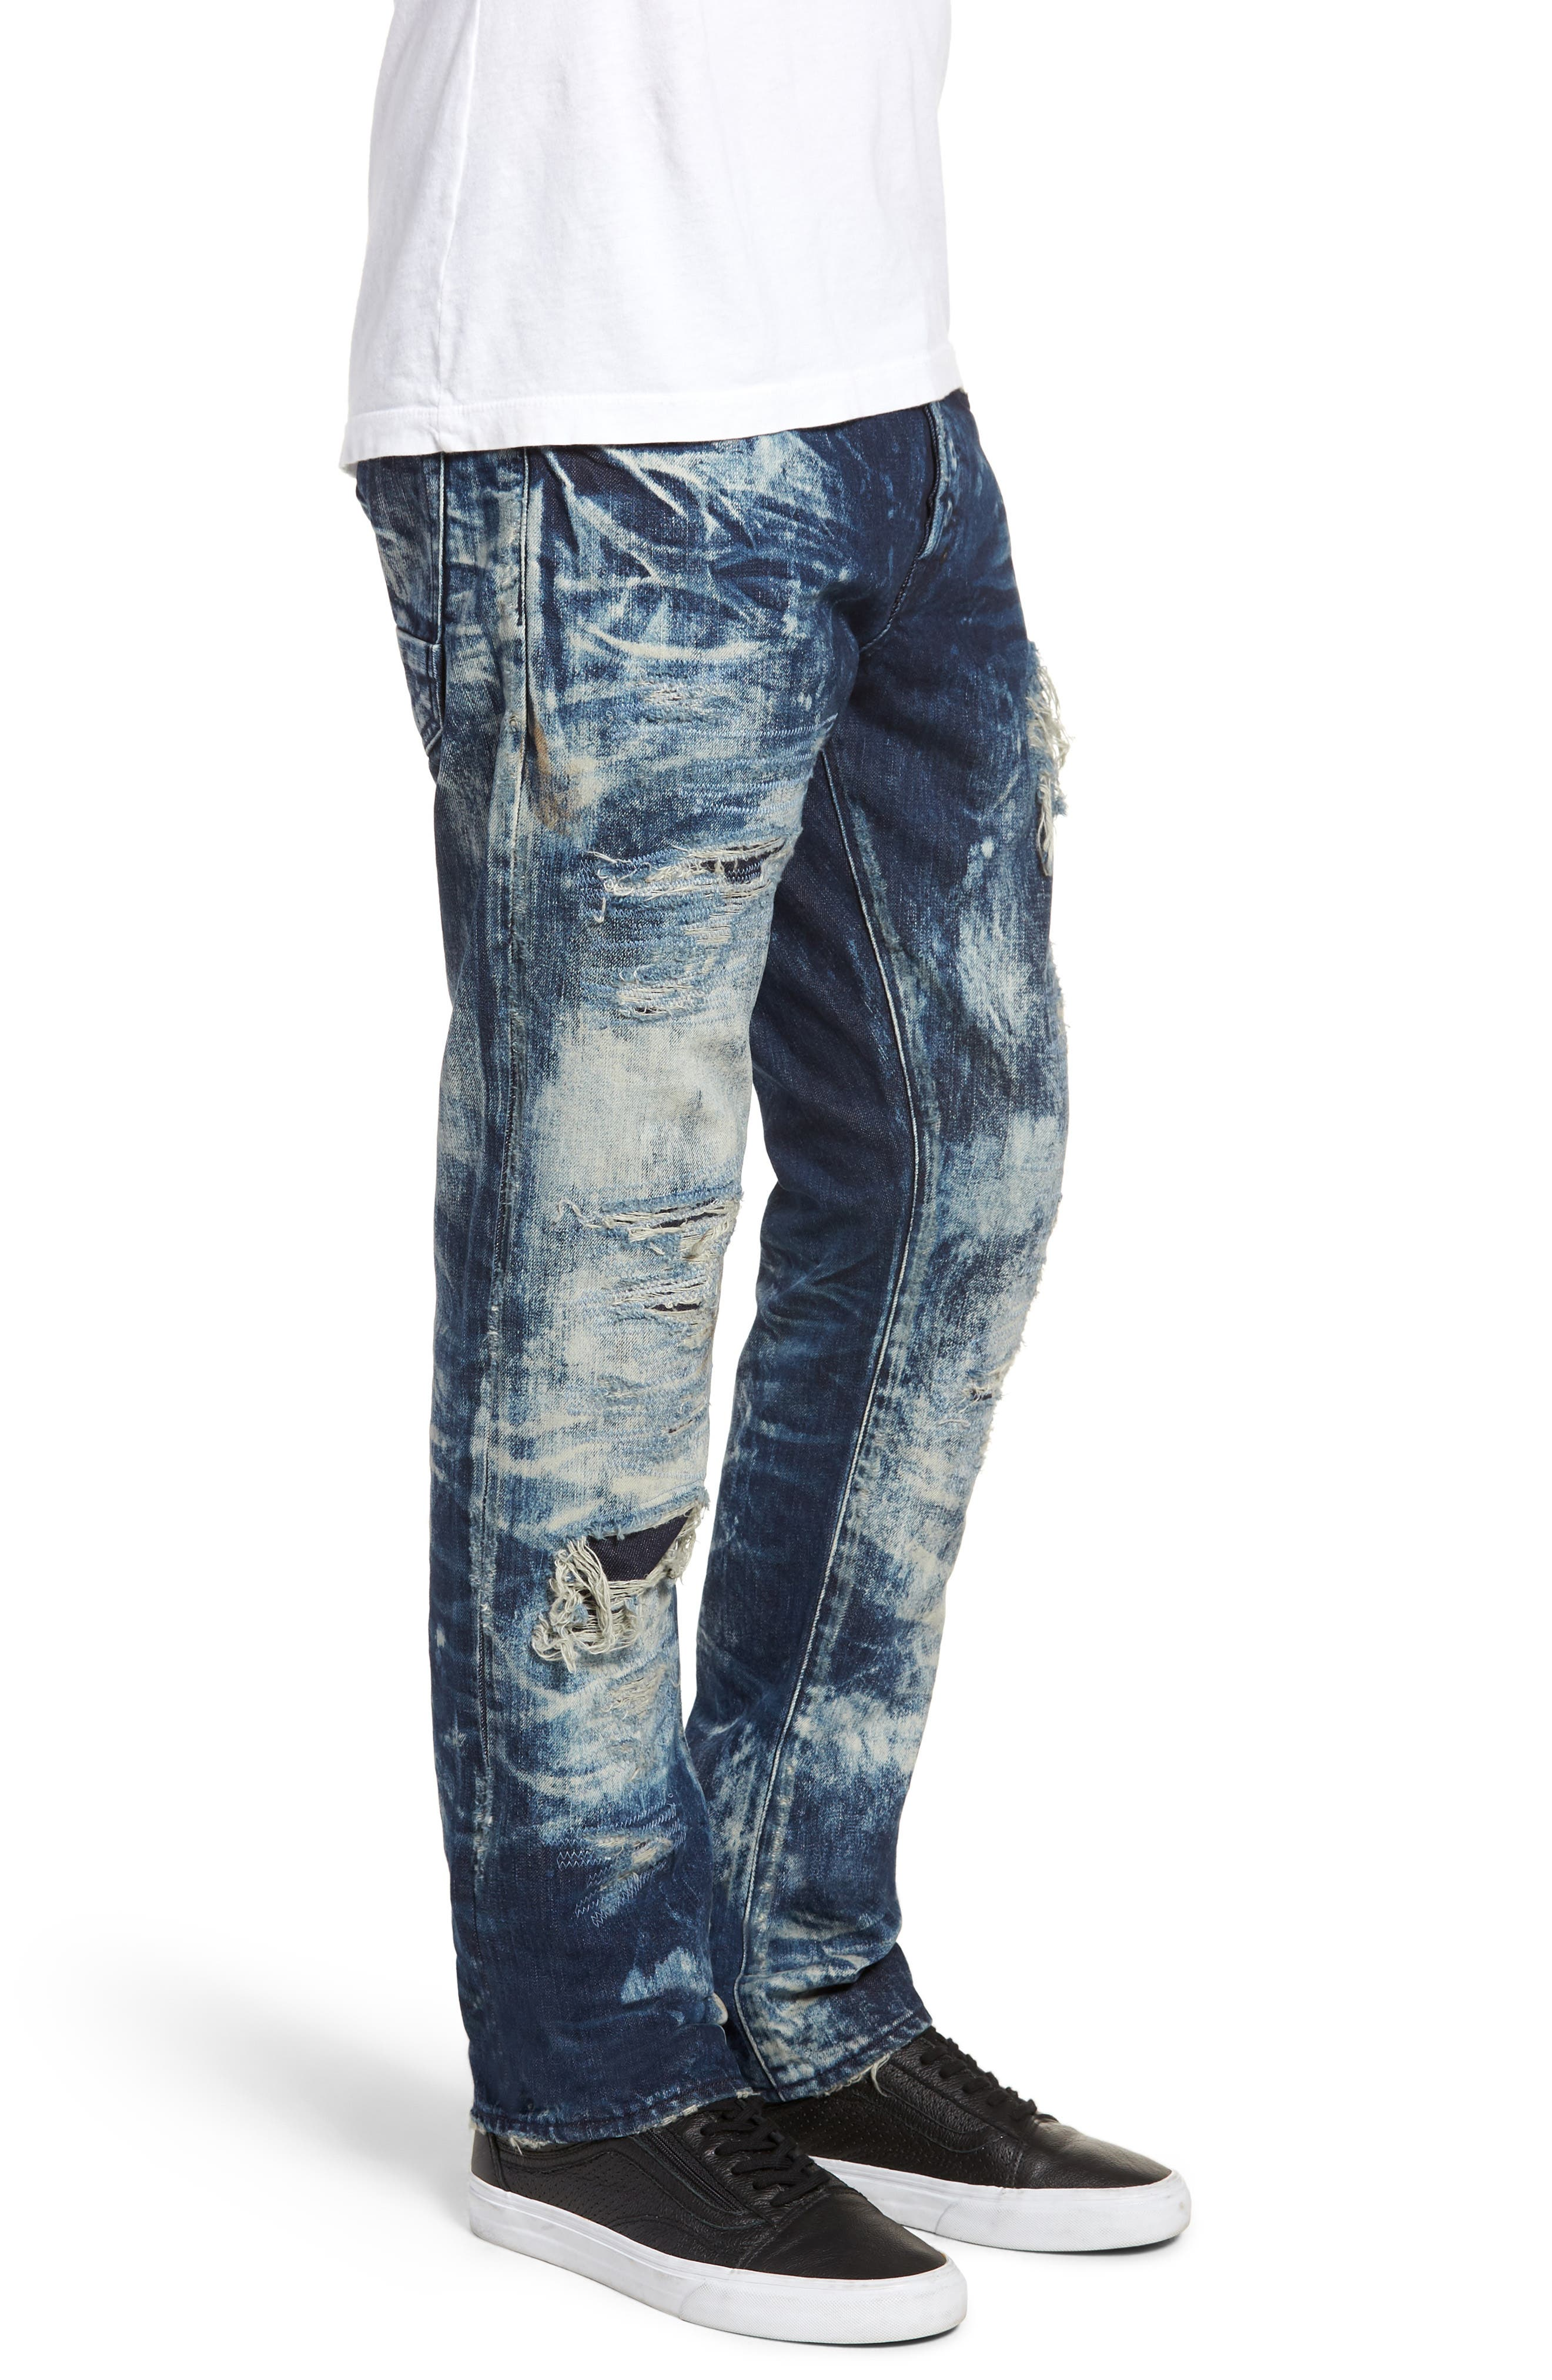 Le Sabre Slim Fit Jeans,                             Alternate thumbnail 3, color,                             Consolation